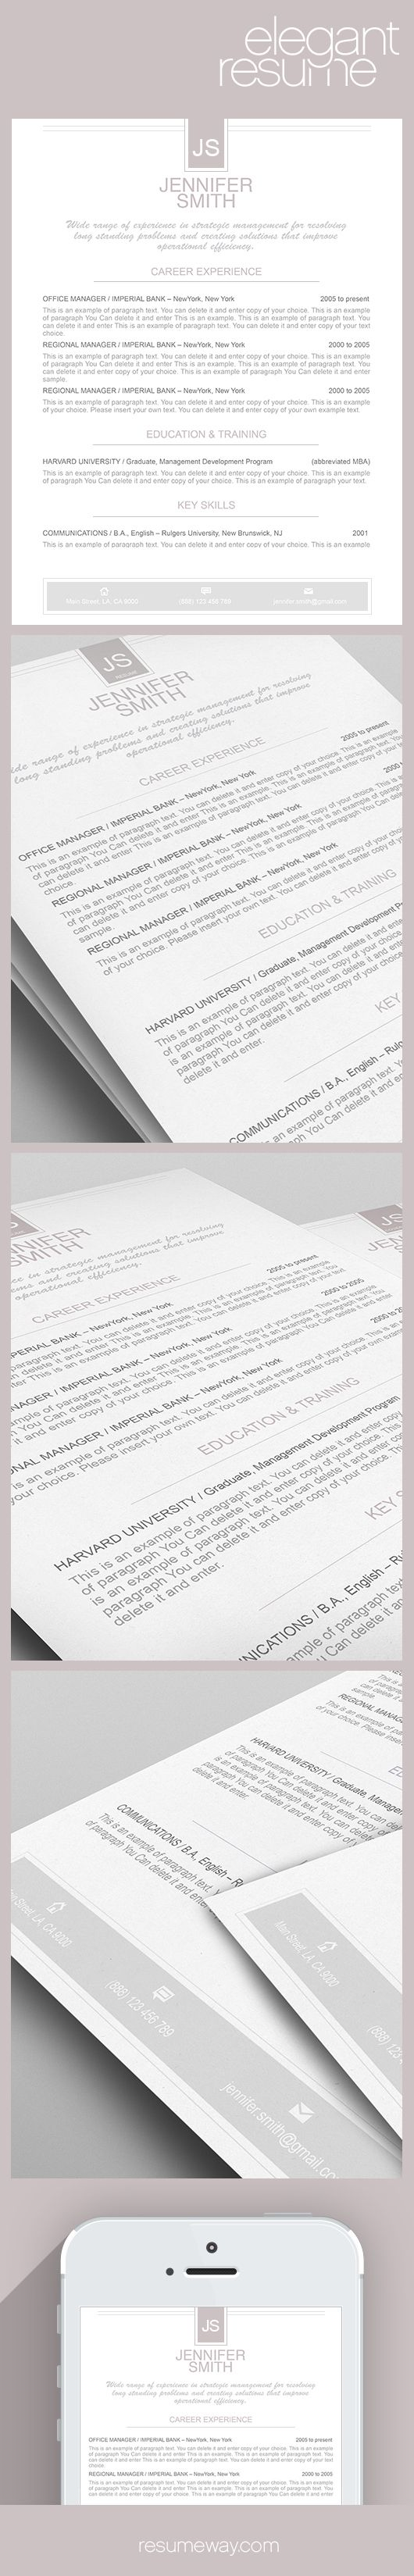 best images about ms word resume templates cover elegant resume template 110460 premium line of resume cover letter templates easy edit ms word apple pages good idea selected by